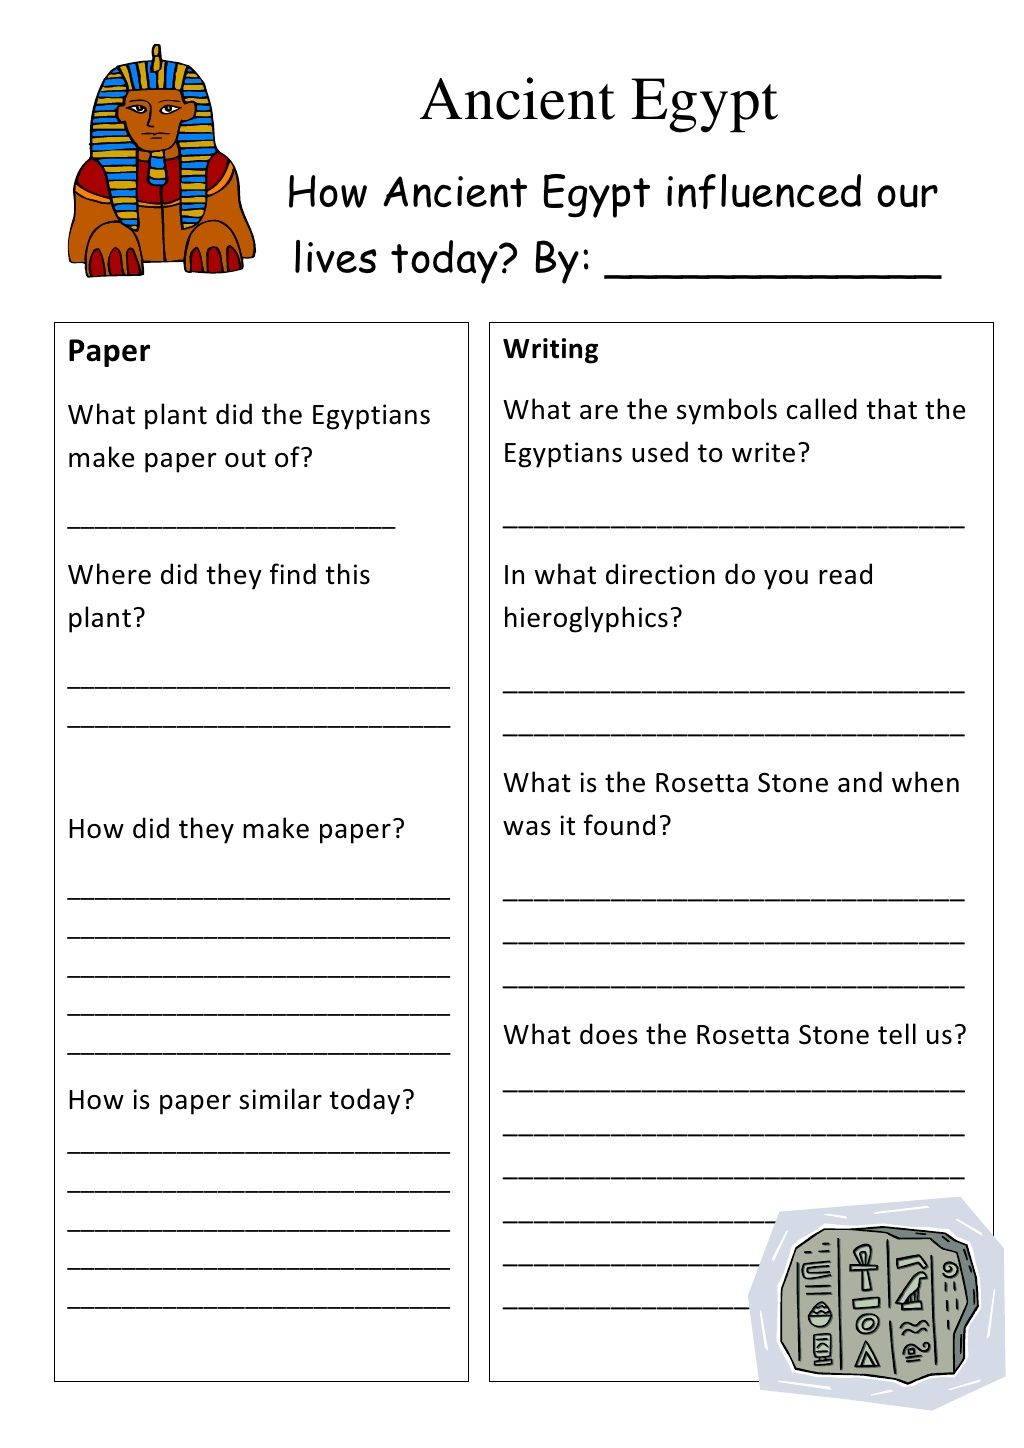 Printables Ancient Egypt Worksheets map of ancient egypt worksheet for kids grades 1 6 free to by 7gchaffey via slideshare